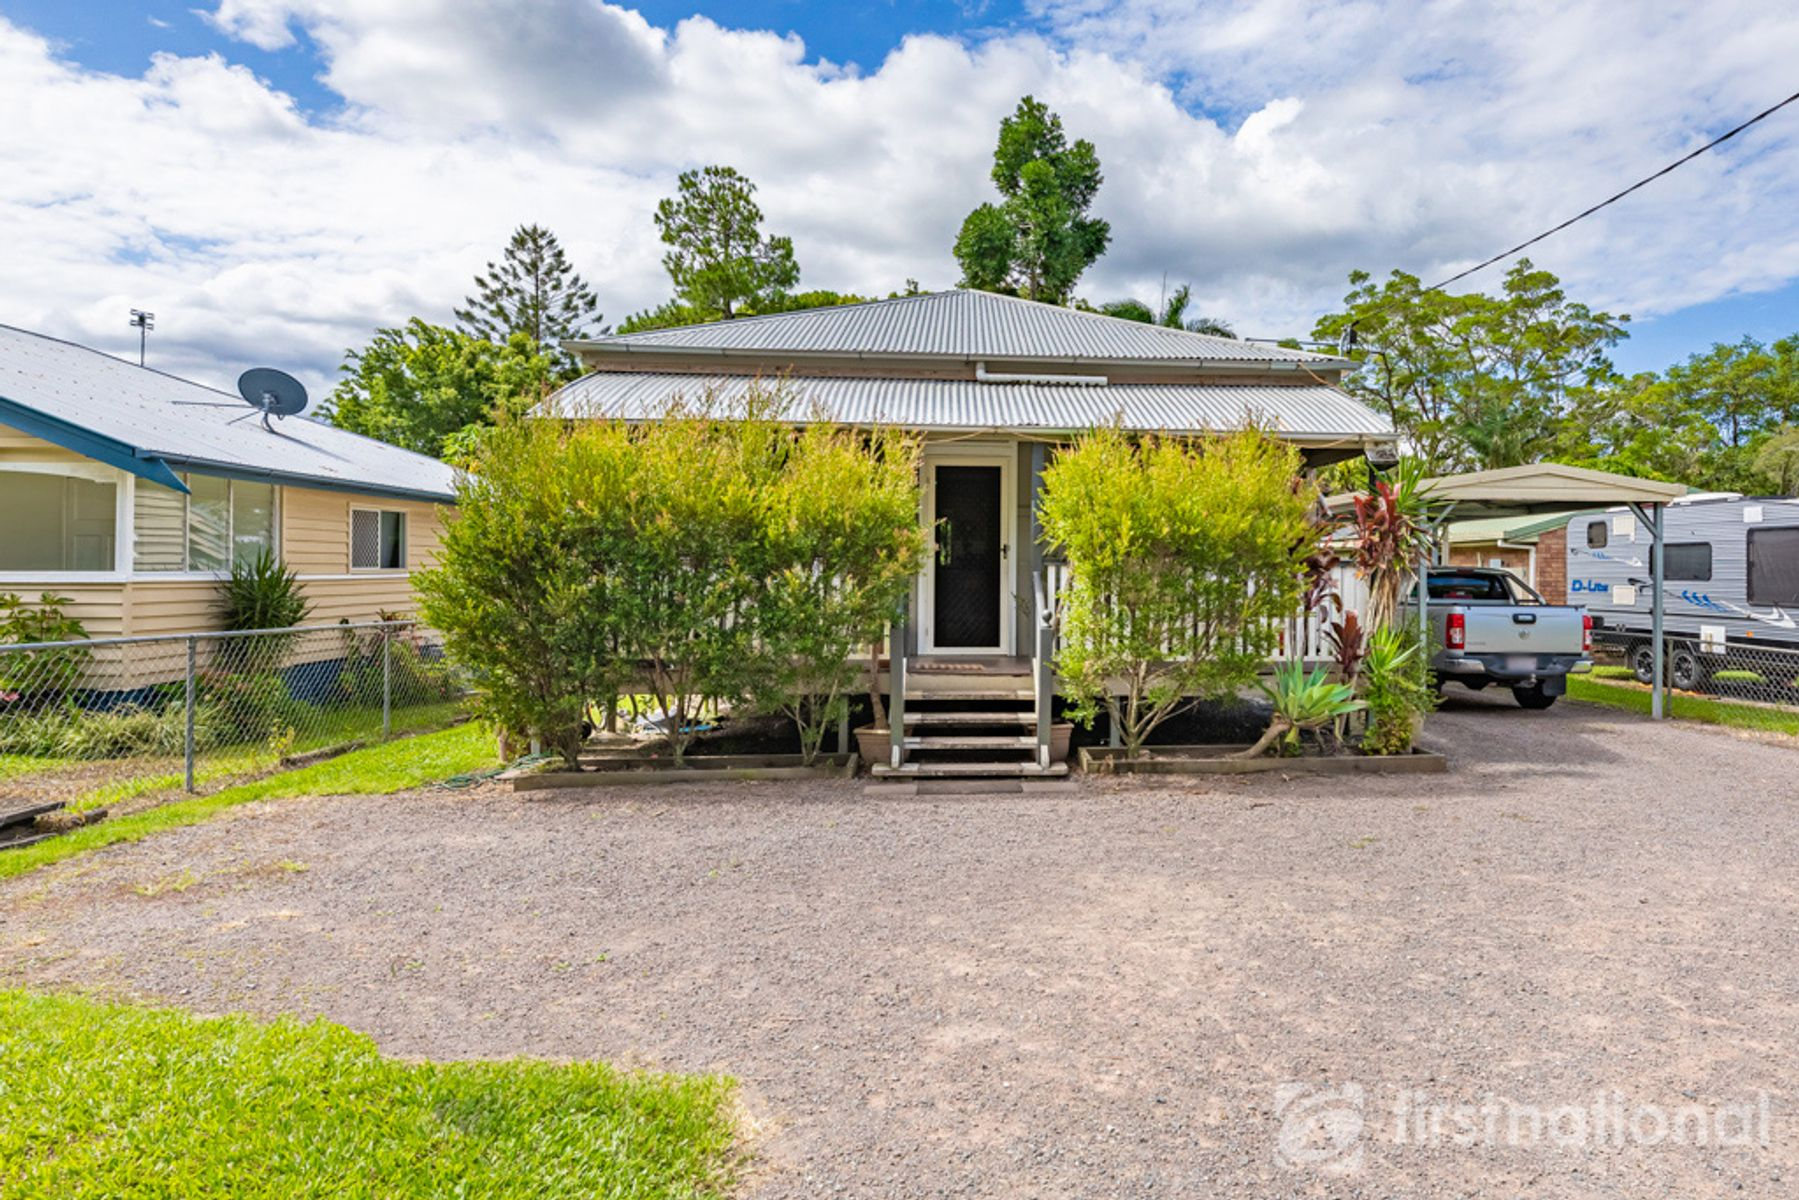 21 Gympie Street North, Landsborough, QLD 4550